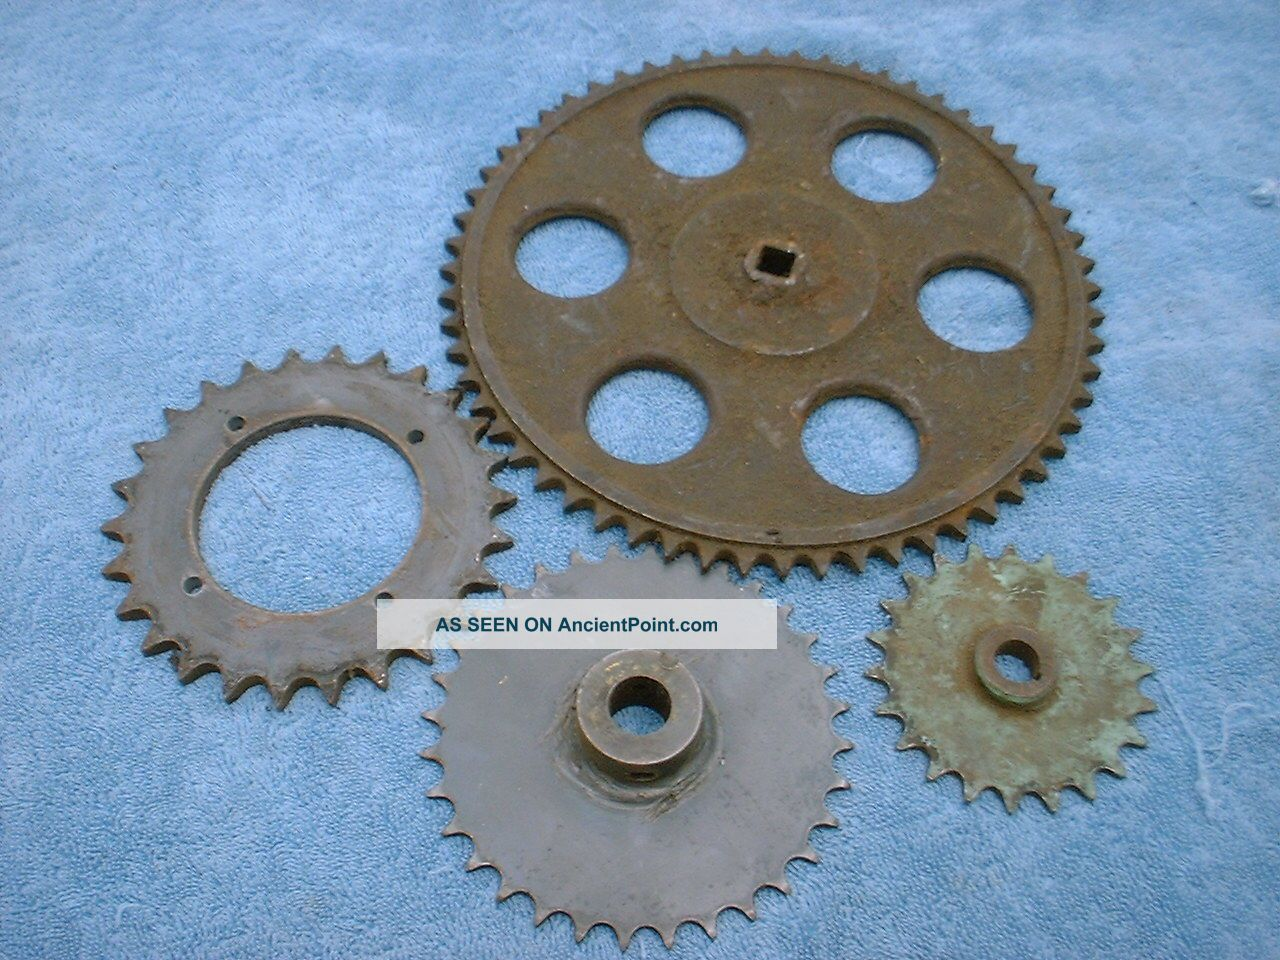 Vintage Cast Iron Industrial 4 Gear Sprockets Rustic Decor Steampunk Heavy Other photo